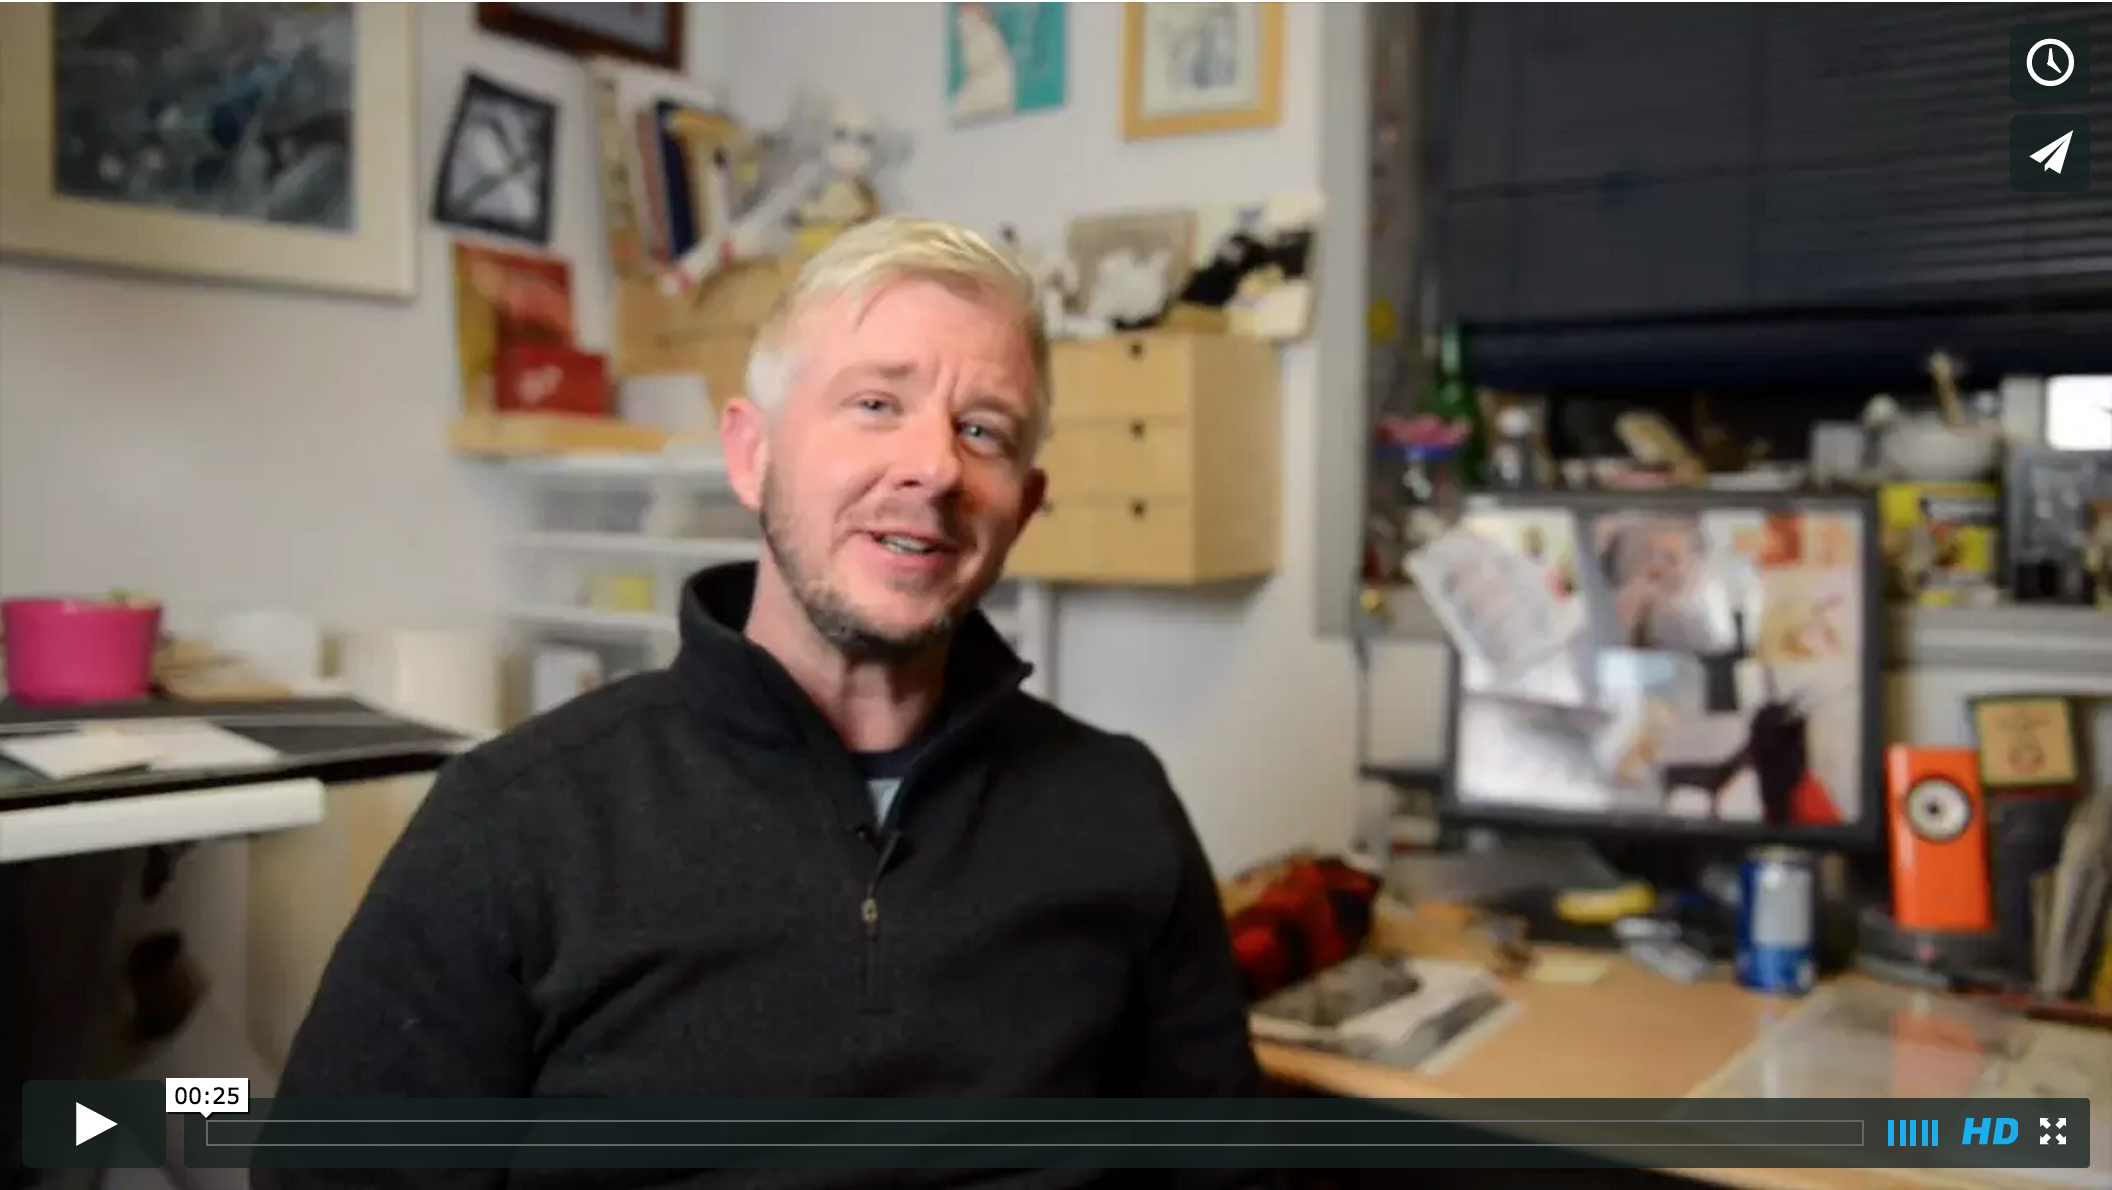 Leading up to Marcus Jackson's art show we produced 6 videos about him, his art and his practice.